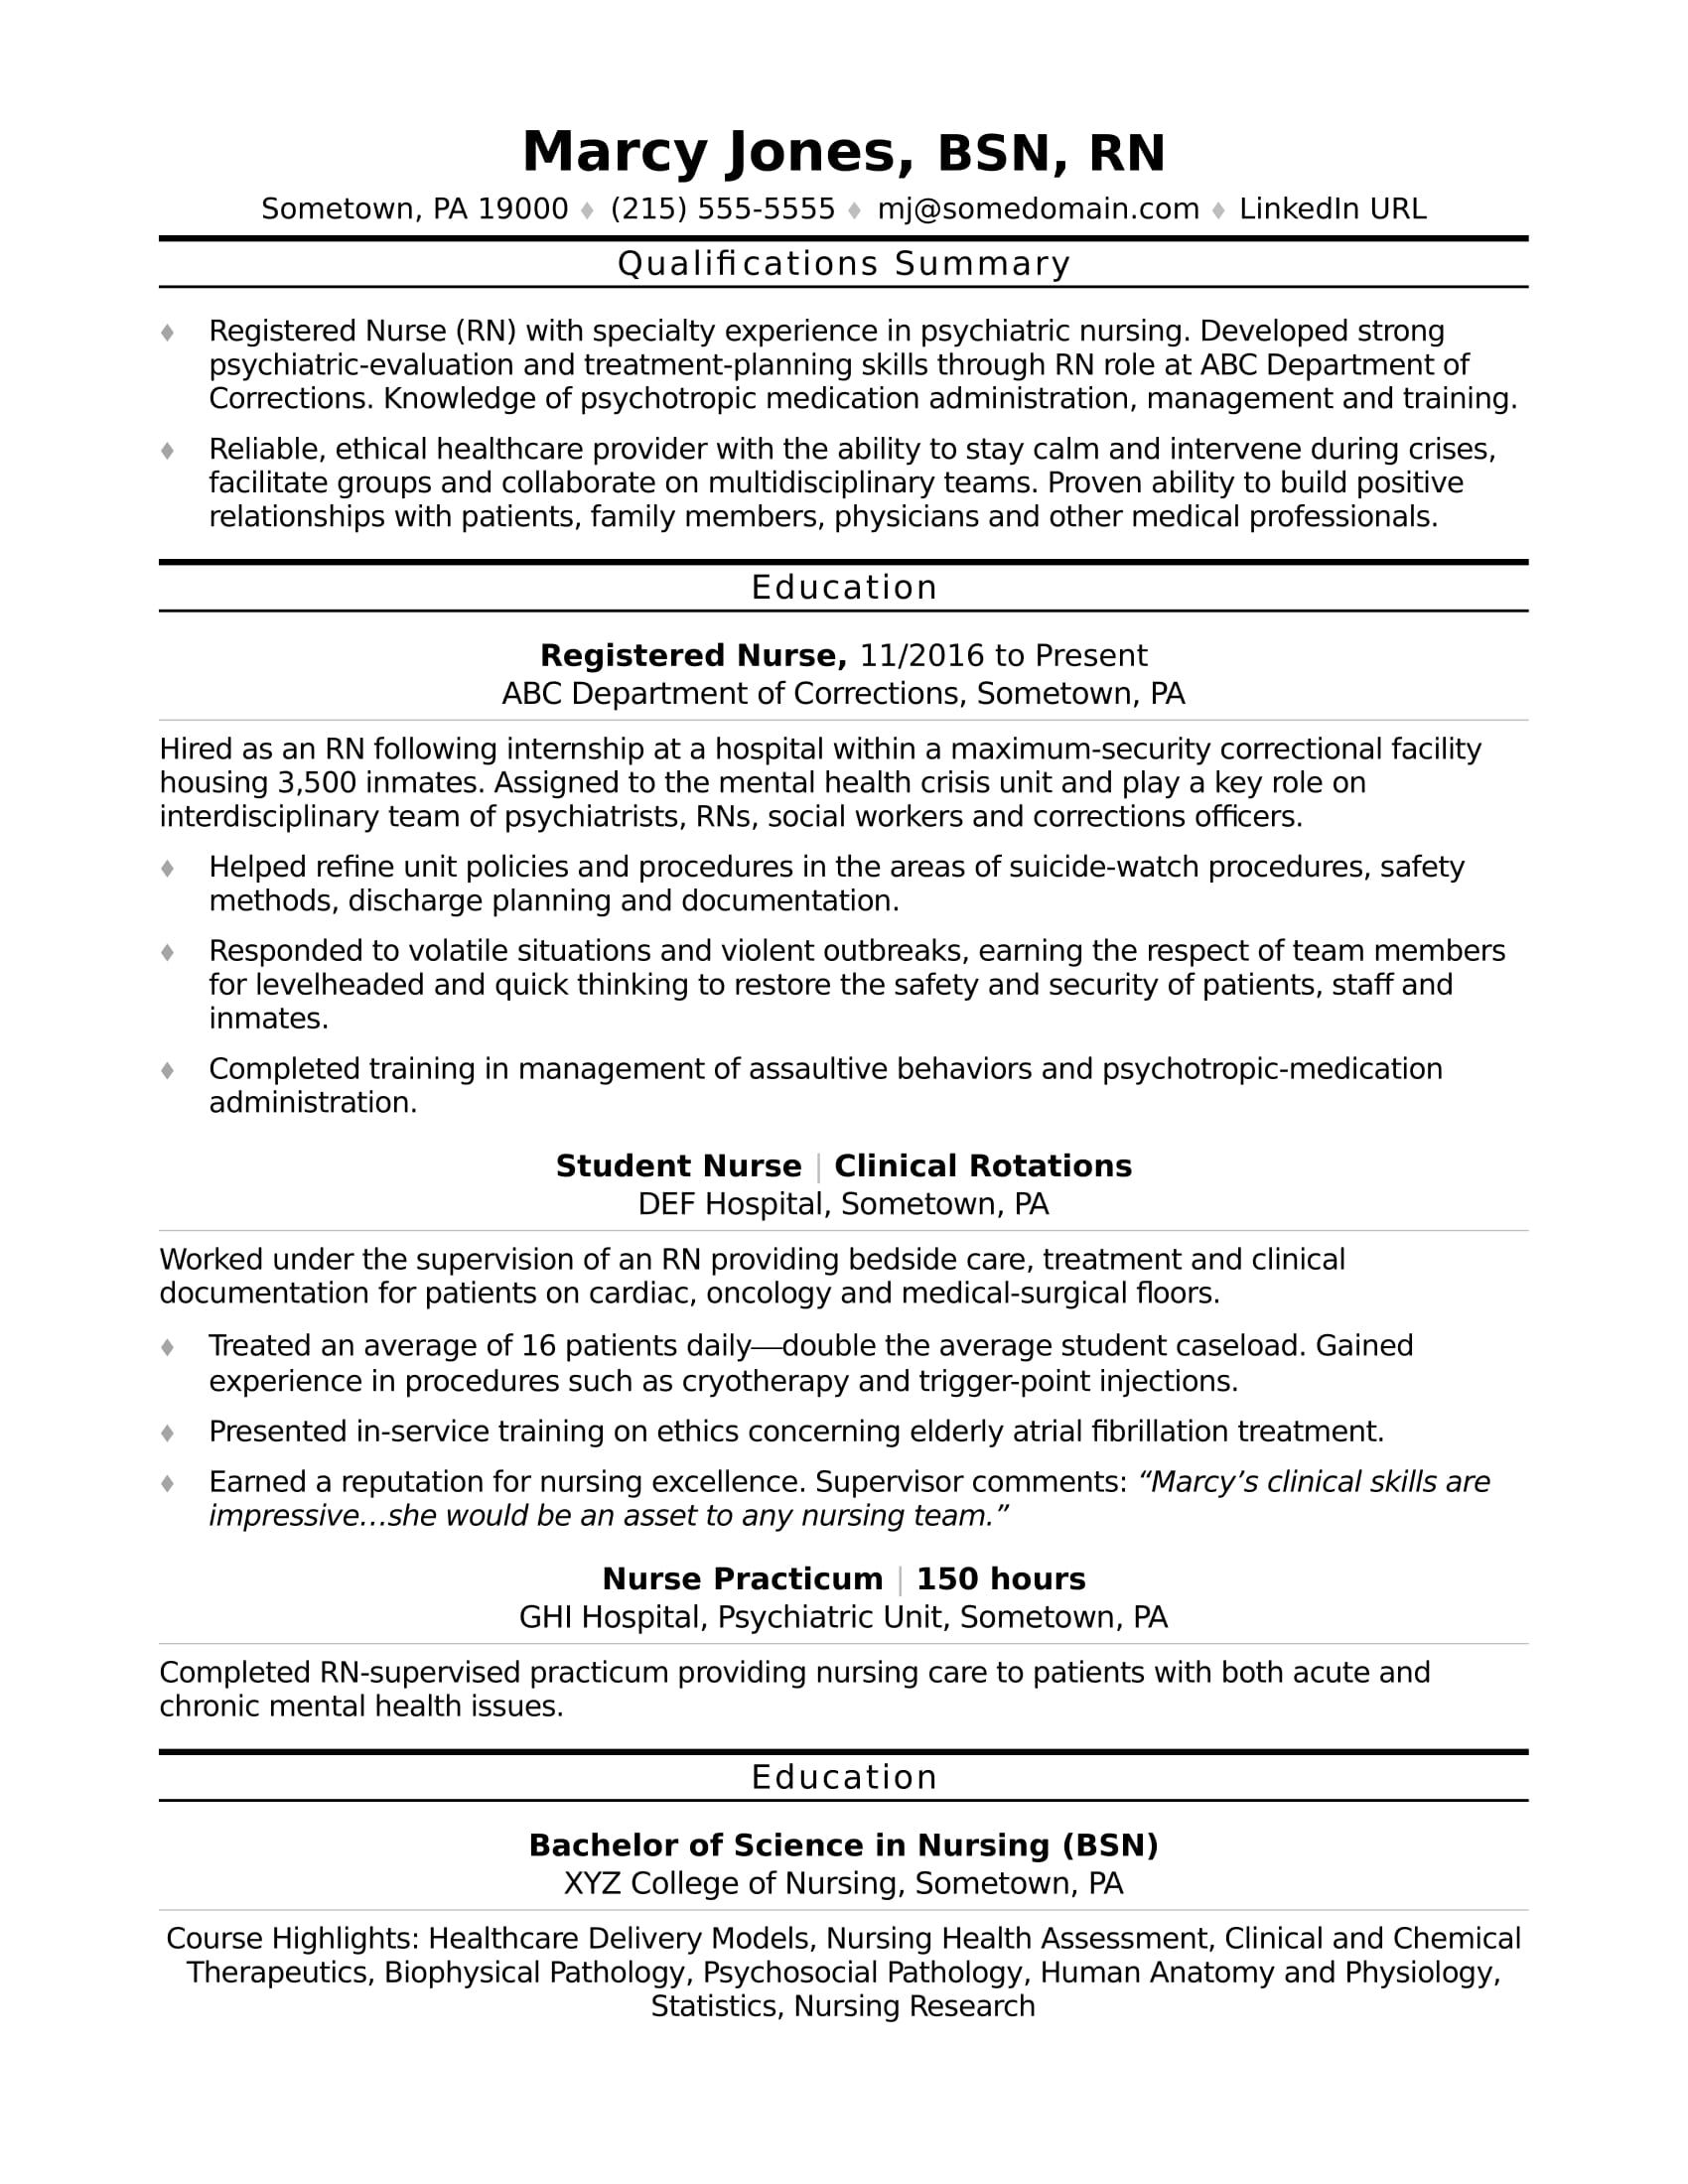 Learn how to build a powerful entry level nurse resume with this free resume sample